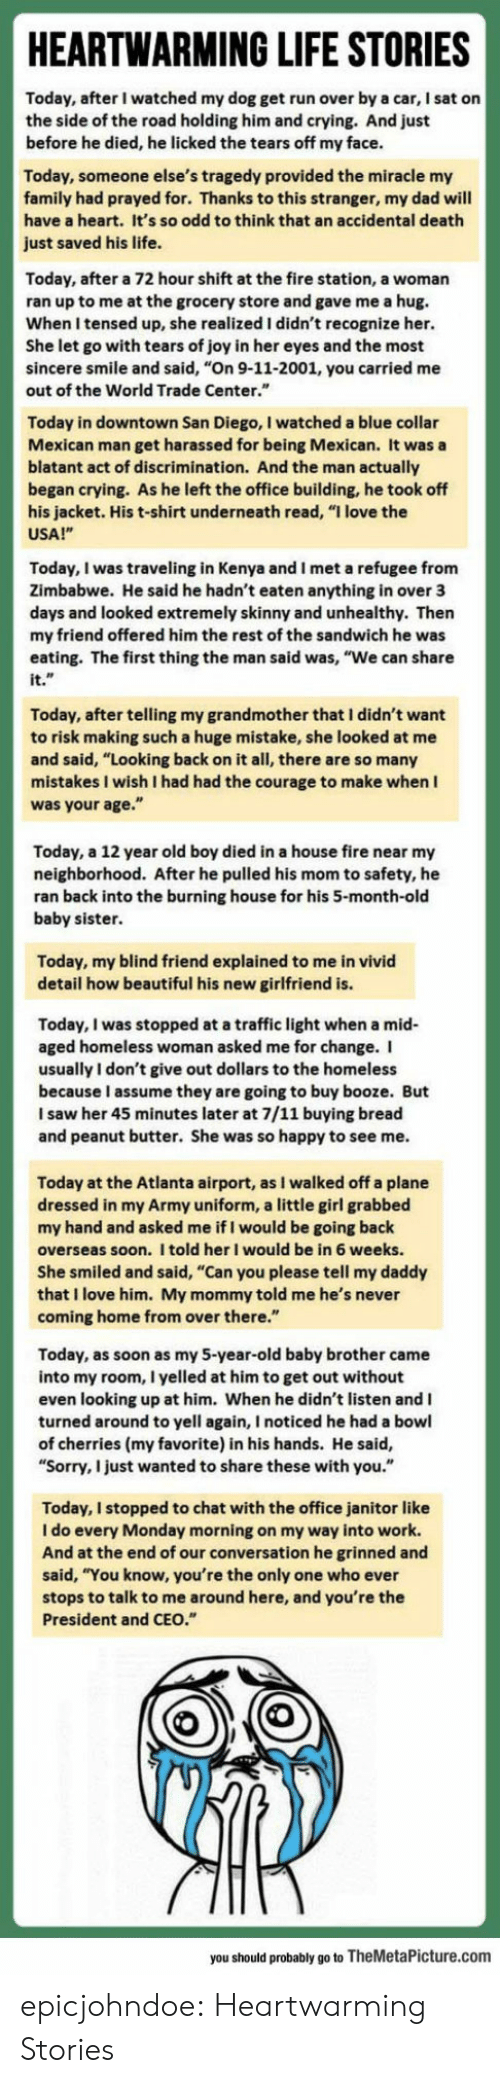 "atlanta airport: HEARTWARMING LIFE STORIES  Today, after I watched my dog get run over by a car, I sat on  the side of the road holding him and crying. And just  before he died, he licked the tears off my face.  ay, someone else's tragedy provided the miracle my  family had prayed for. Thanks to this stranger, my dad will  have a heart. It's so odd to think that an accidental death  just saved his life.  Today, after a 72 hour shift at the fire station, a woman  ran up to me at the grocery store and gave me a hug.  When I tensed up, she realized I didn't recognize her.  She let go with tears of joy in her eyes and the most  sincere smile and said, ""On 9-11-2001, you carried me  out of the World Trade Center.""  Today in downtown San Diego, I watched a blue collar  Mexican man get harassed for being Mexican. It was a  blatant act of discrimination. And the man actually  began crying. As he left the office building, he took off  s jacket. His t-shirt underneath read, ""I love the  USA!""  Today, I was traveling in Kenya and I met a refugee from  Zimbabwe. He said he hadn't eaten anything in over 3  ys and looked extremely skinny and unhealthy. Then  my friend offered him the rest of the sandwich he was  eating. The first thing the man said was, ""We can share  it.  Today, after telling my grandmother that I didn't want  to risk making such a huge mistake, she looked at  nd said, ""Looking back on it all, there are so many  stakes I wish I had had the courage to make when I  was your age.""  Today, a 12 year old boy died in a house fire near my  neighborhood. After he pulled his mom to safety, he  ran back into the burning house for his 5-month-old  baby sister  Today, my blind friend explained to me in vivid  detail how beautiful his new girlfriend is  Today, I was stopped at a traffic light when a mid  aged homeless woman asked me for change. I  usually I don't give out dollars to the homeless  because I assume they are going to buy booze. But  I saw her 45 minutes later at 7/11 buying bread  and peanut butter. She was so happy to see me  Today at the Atlanta airport, as I walked off a plane  dressed in my Army uniform, a little girl grabbed  my hand and asked me if I would be going back  overseas soon. I told her I would be in 6 weeks.  he smiled and said, ""Can you please tell my daddy  that I love him. My mommy told me he's never  coming home from over there  Today, as soon as my 5-year-old baby brother came  into my room, I yelled at him to get out without  even looking up at him. When he didn't listen and I  turned around to yell again, I noticed he had a bowl  of cherries (my favorite) in his hands. He said,  "" .""  Sorry, I just wanted to share these with you  Today, I stopped to chat with the office janitor like  I do every Monday morning on my way into work.  And at the end of our conversation he grinned and  said, ""You know, you're the only one who ever  stops to talk to me around here, and you're the  President and CEO.  you should probably go to TheMetaPicture.com epicjohndoe:  Heartwarming Stories"